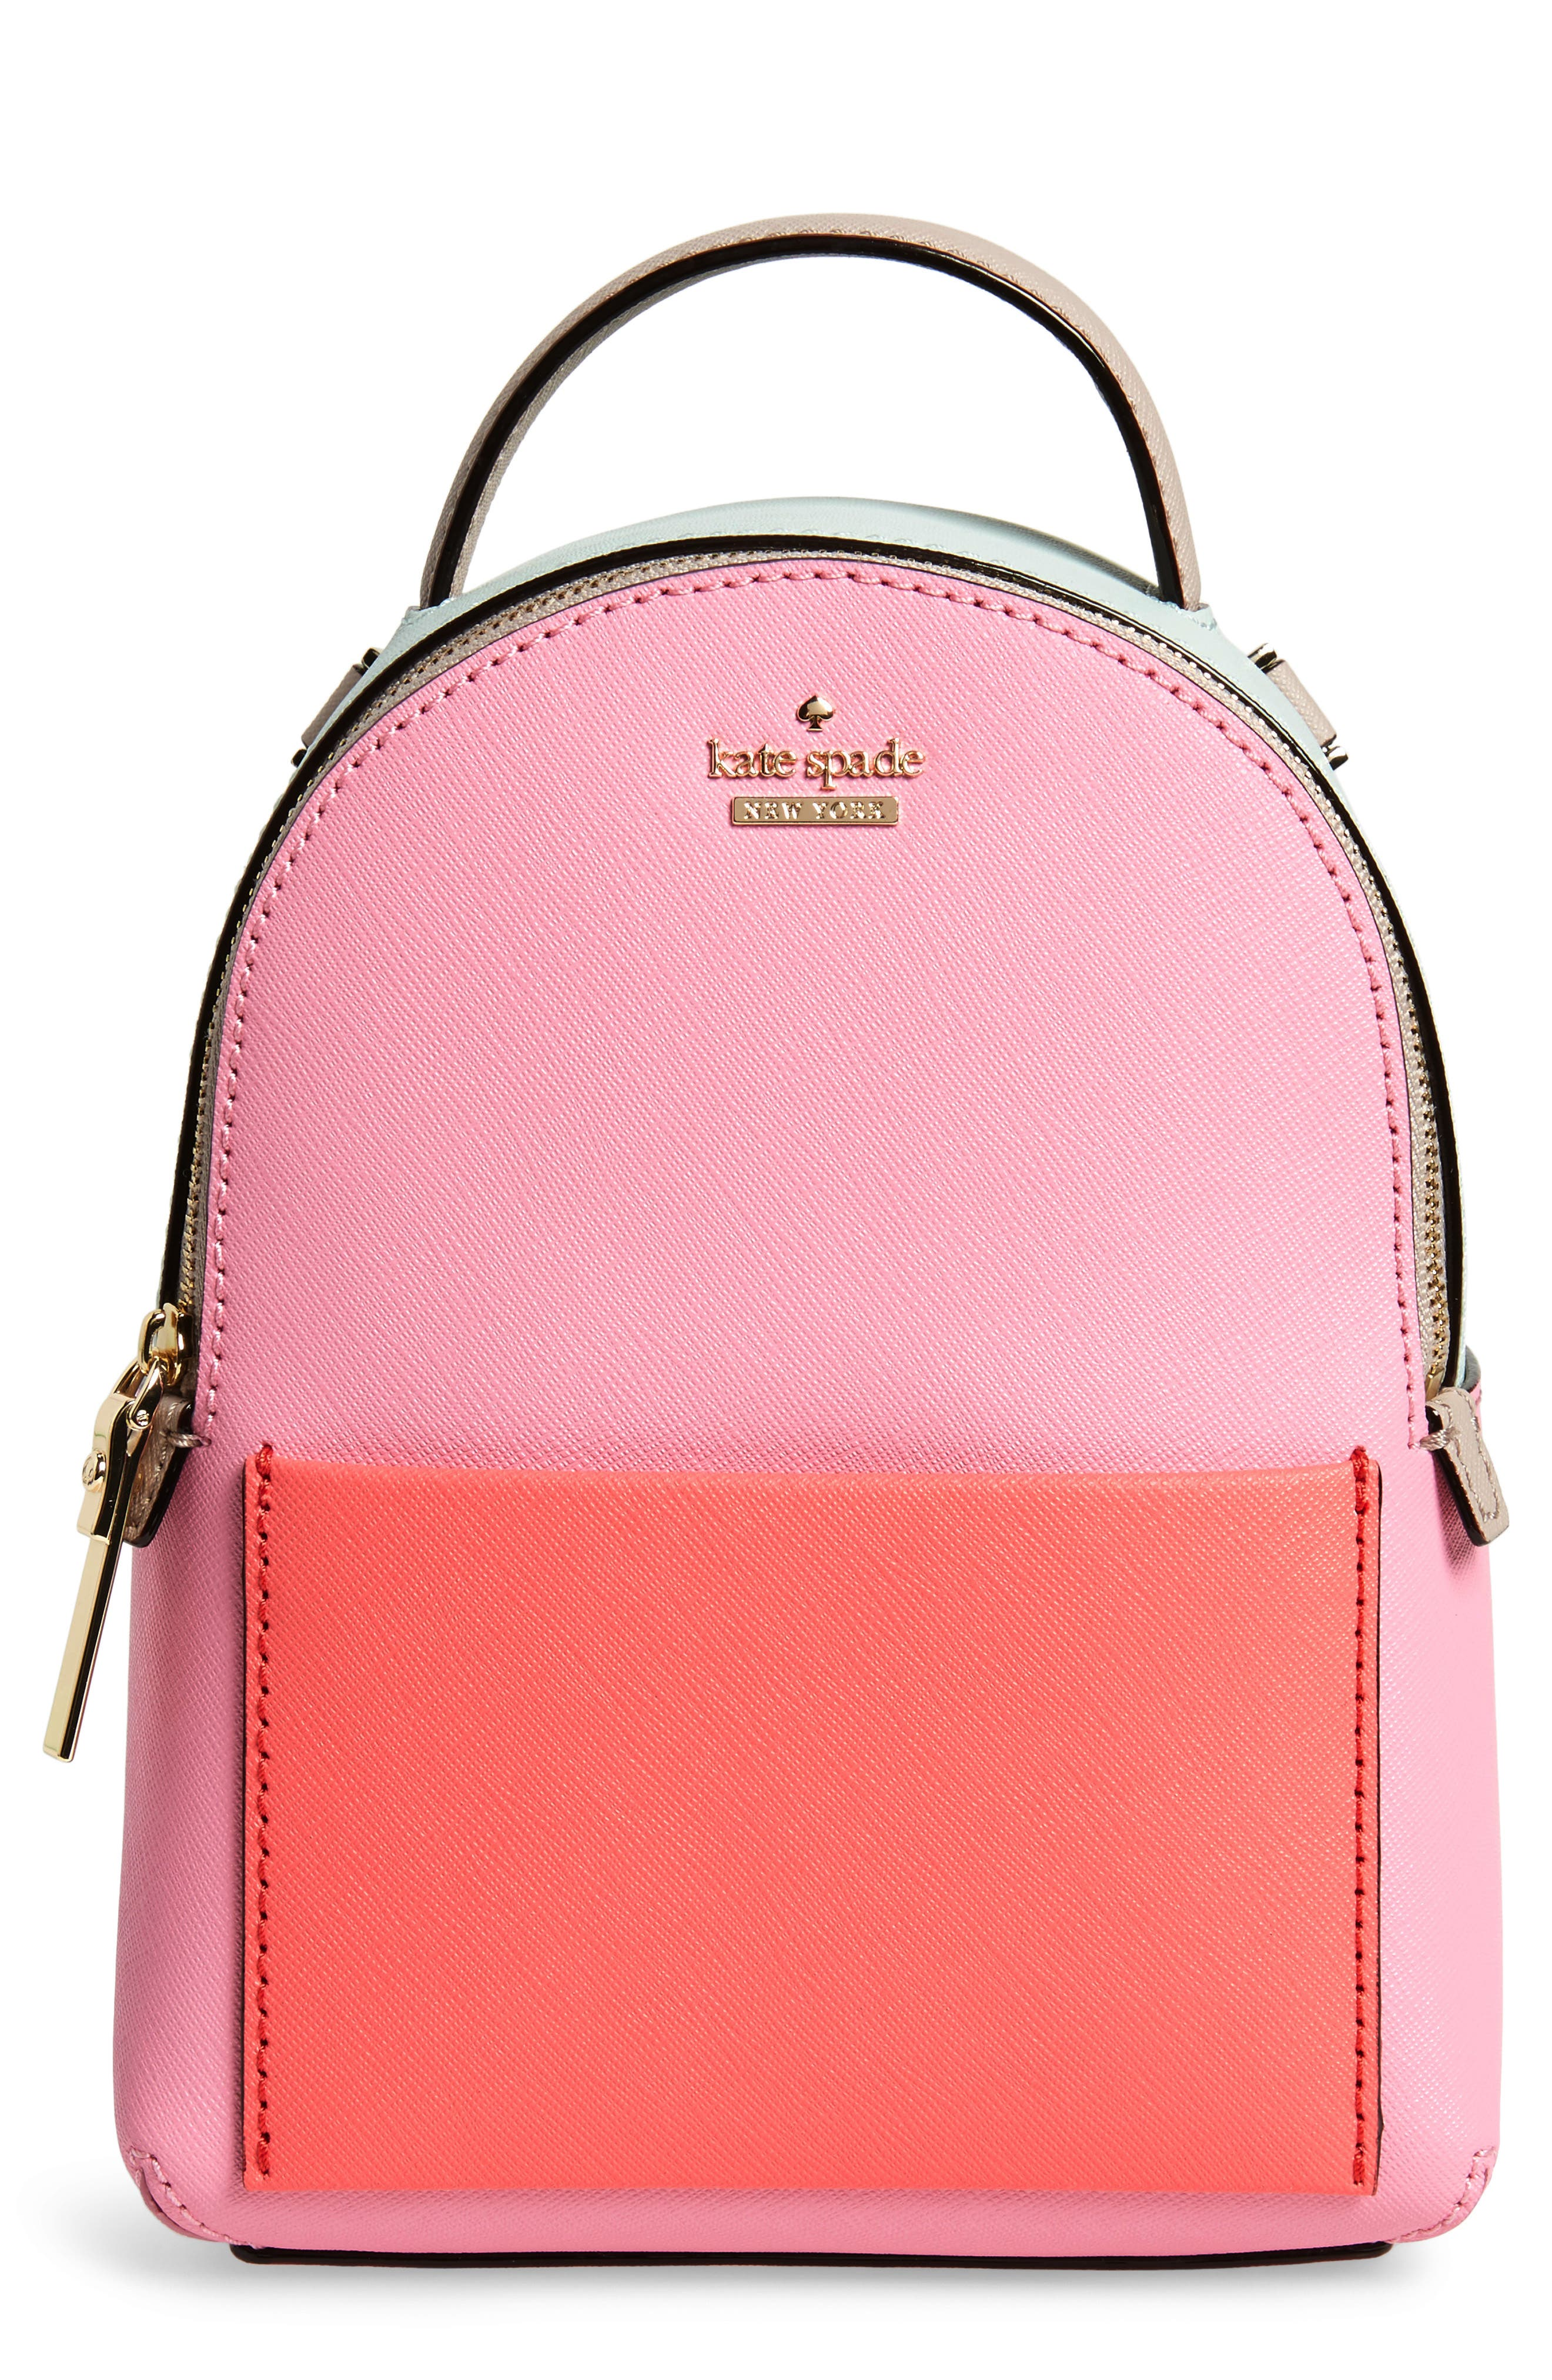 cameron street merry convertible leather backpack,                         Main,                         color, Eraser Pink Multi